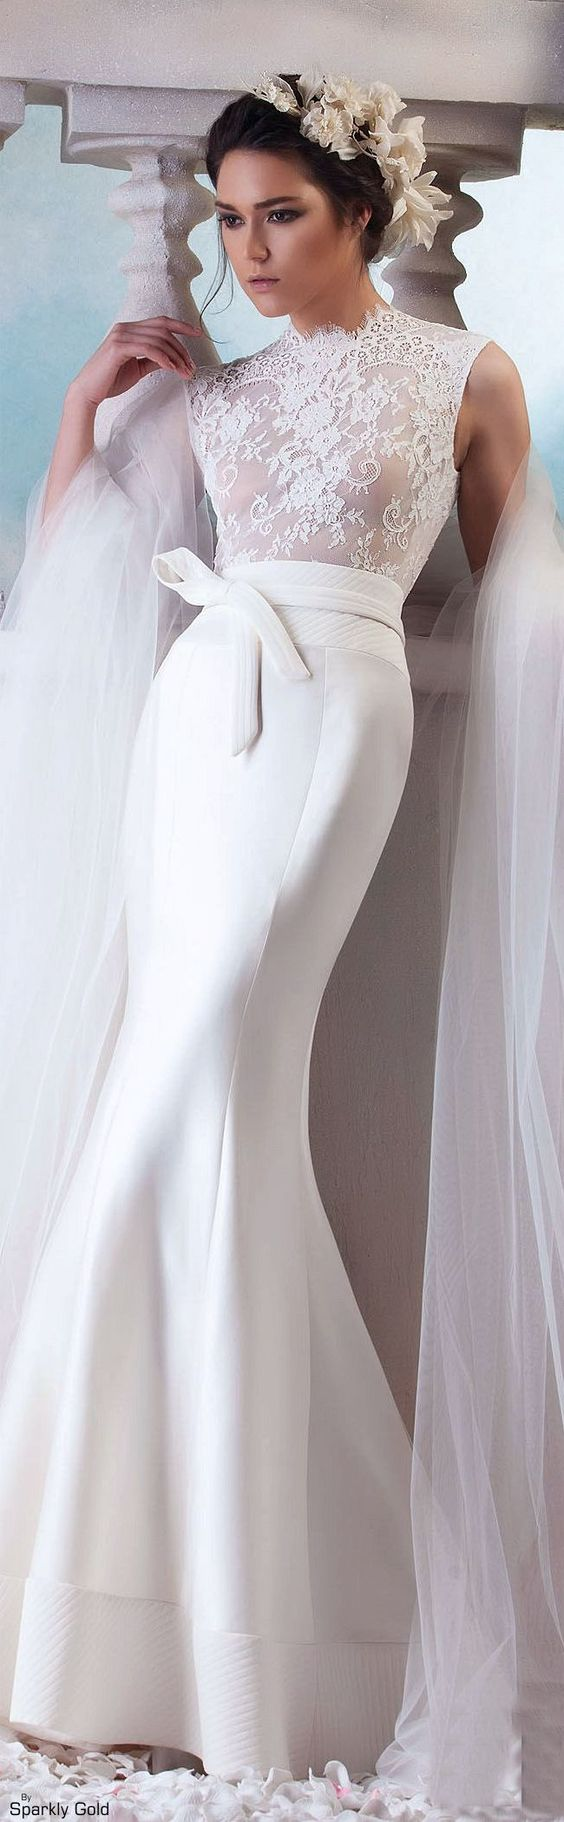 Hanna Touma S/S 2015 #coupon code nicesup123 gets 25% off at  Provestra.com Skinception.com